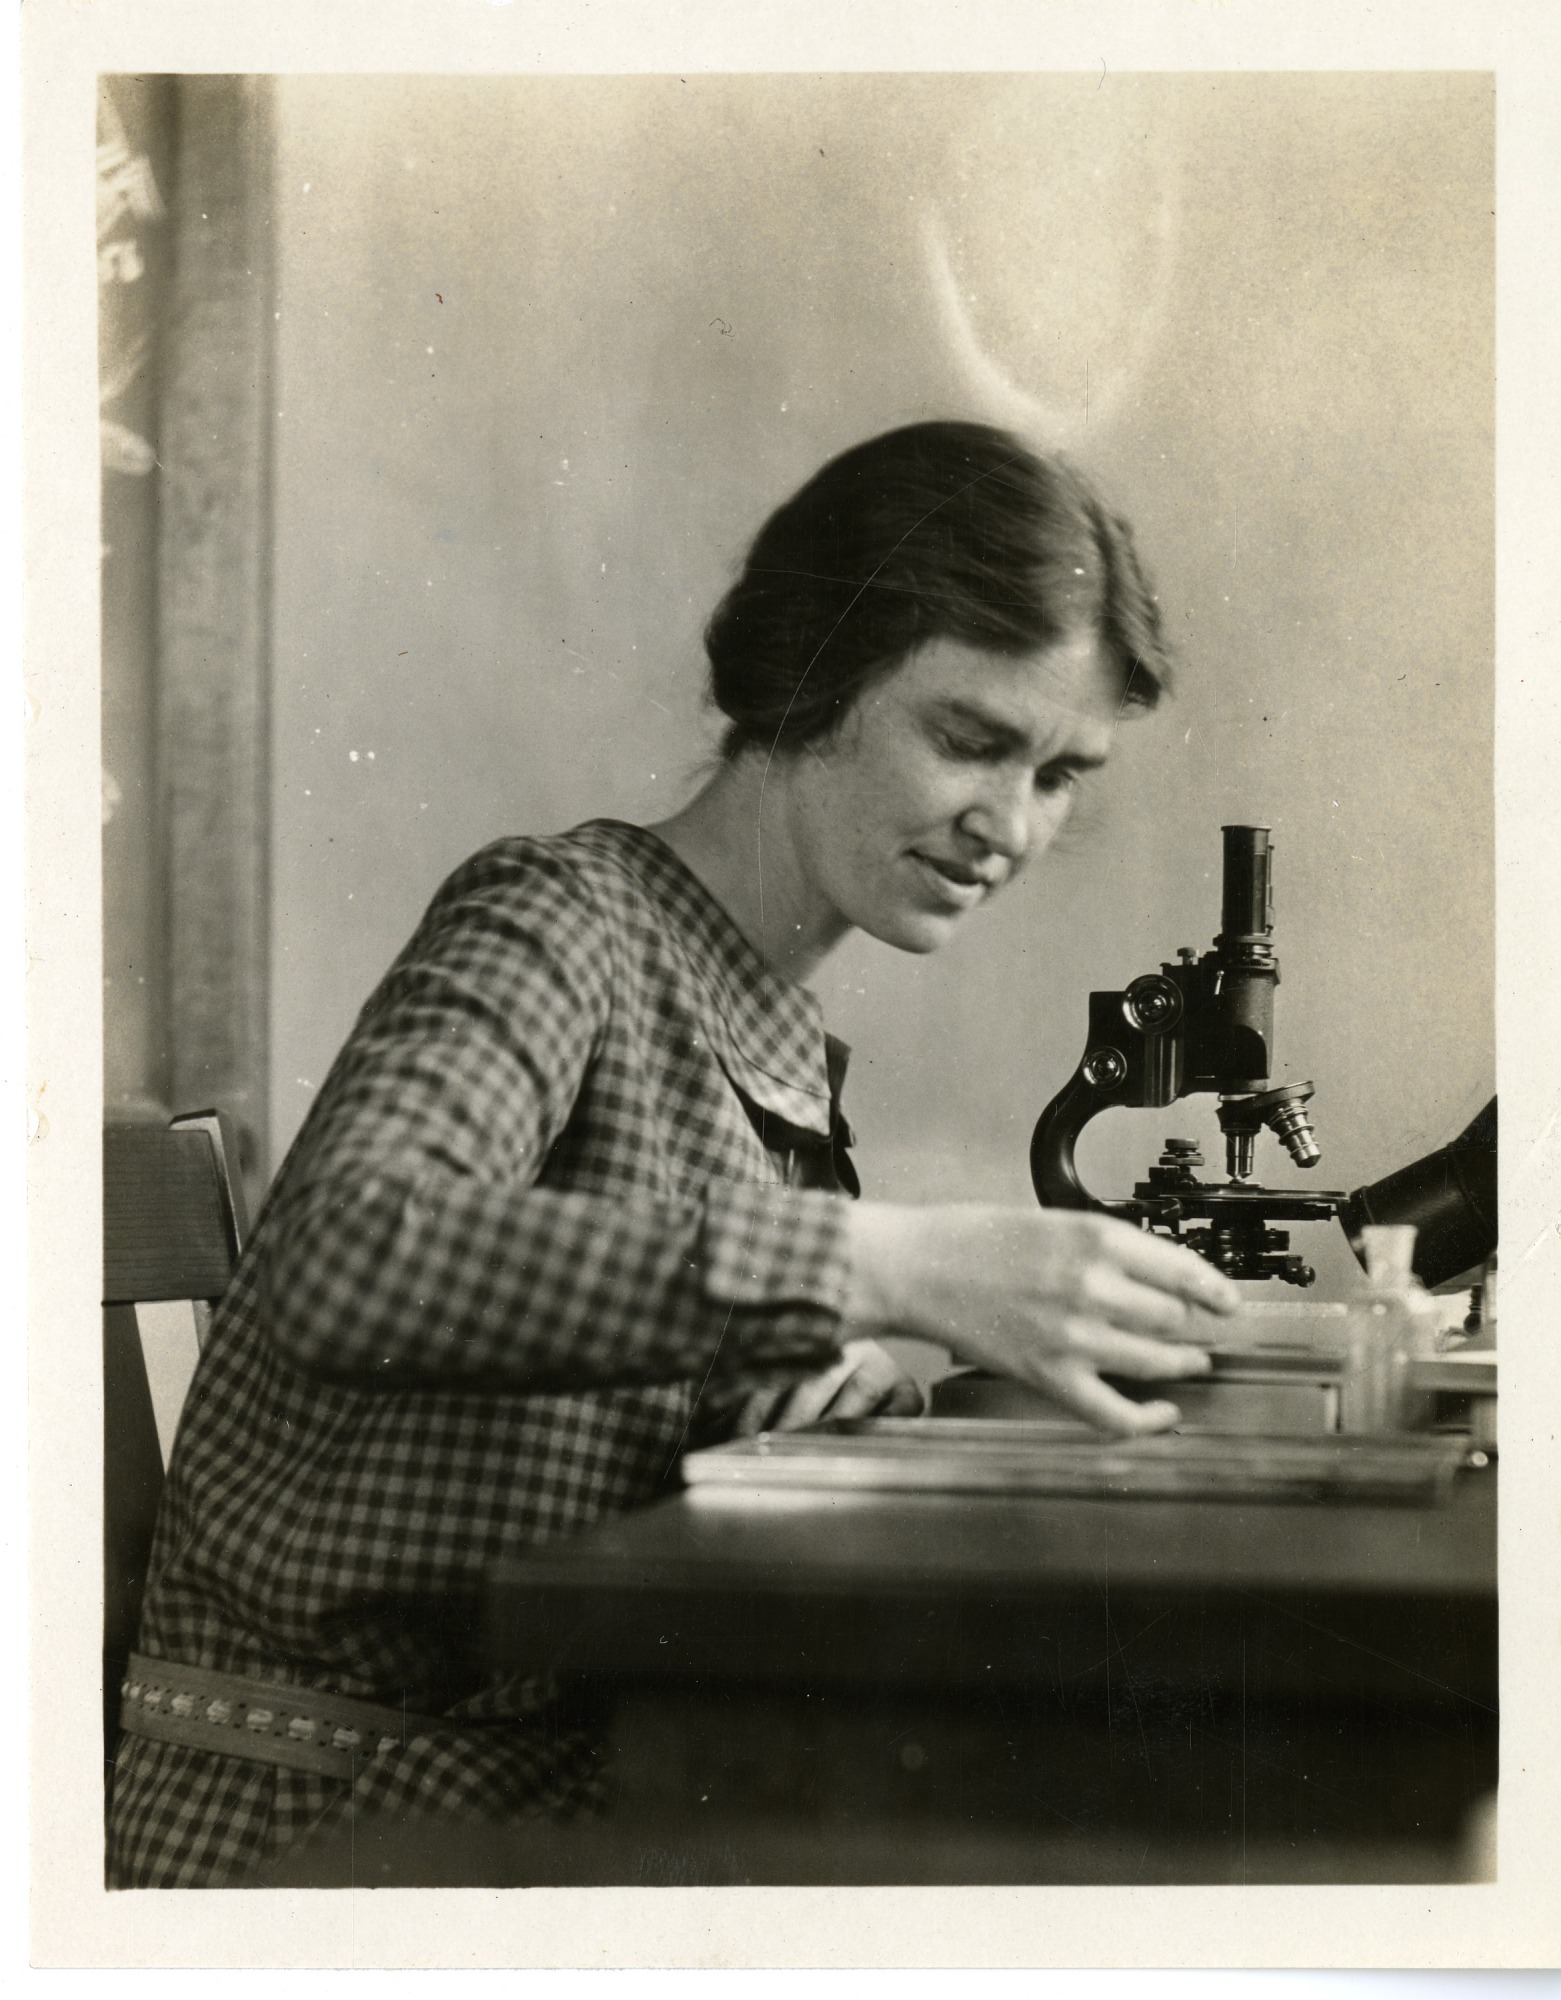 Margaret Mann Lesley (1891-1988), Smithsonian Institution Archives, SIA Acc. 90-105 [SIA2008-5268].